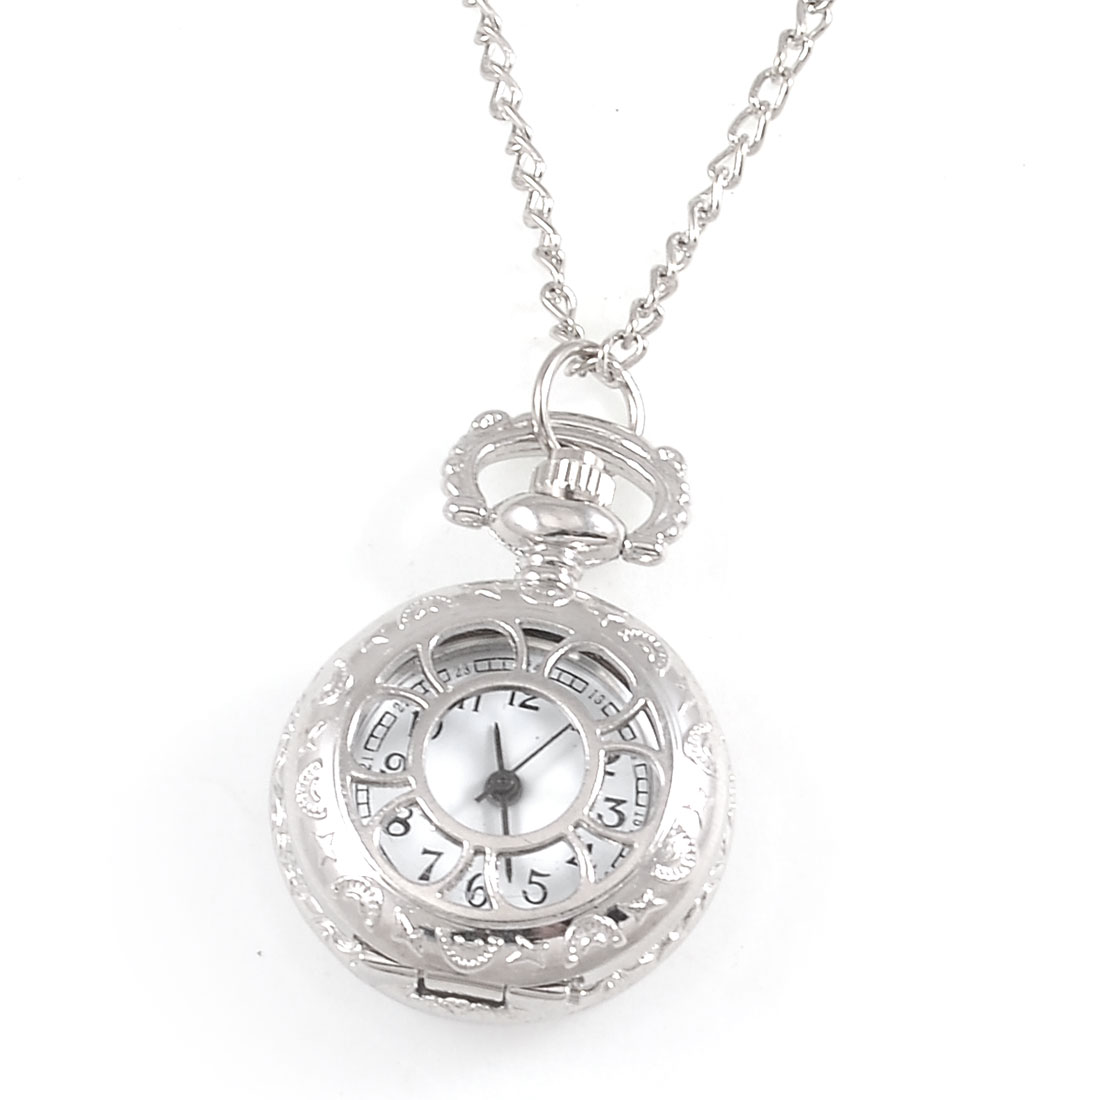 Ladies Flower Pattern Cut out Hunter Case Necklace Watch Silver Tone